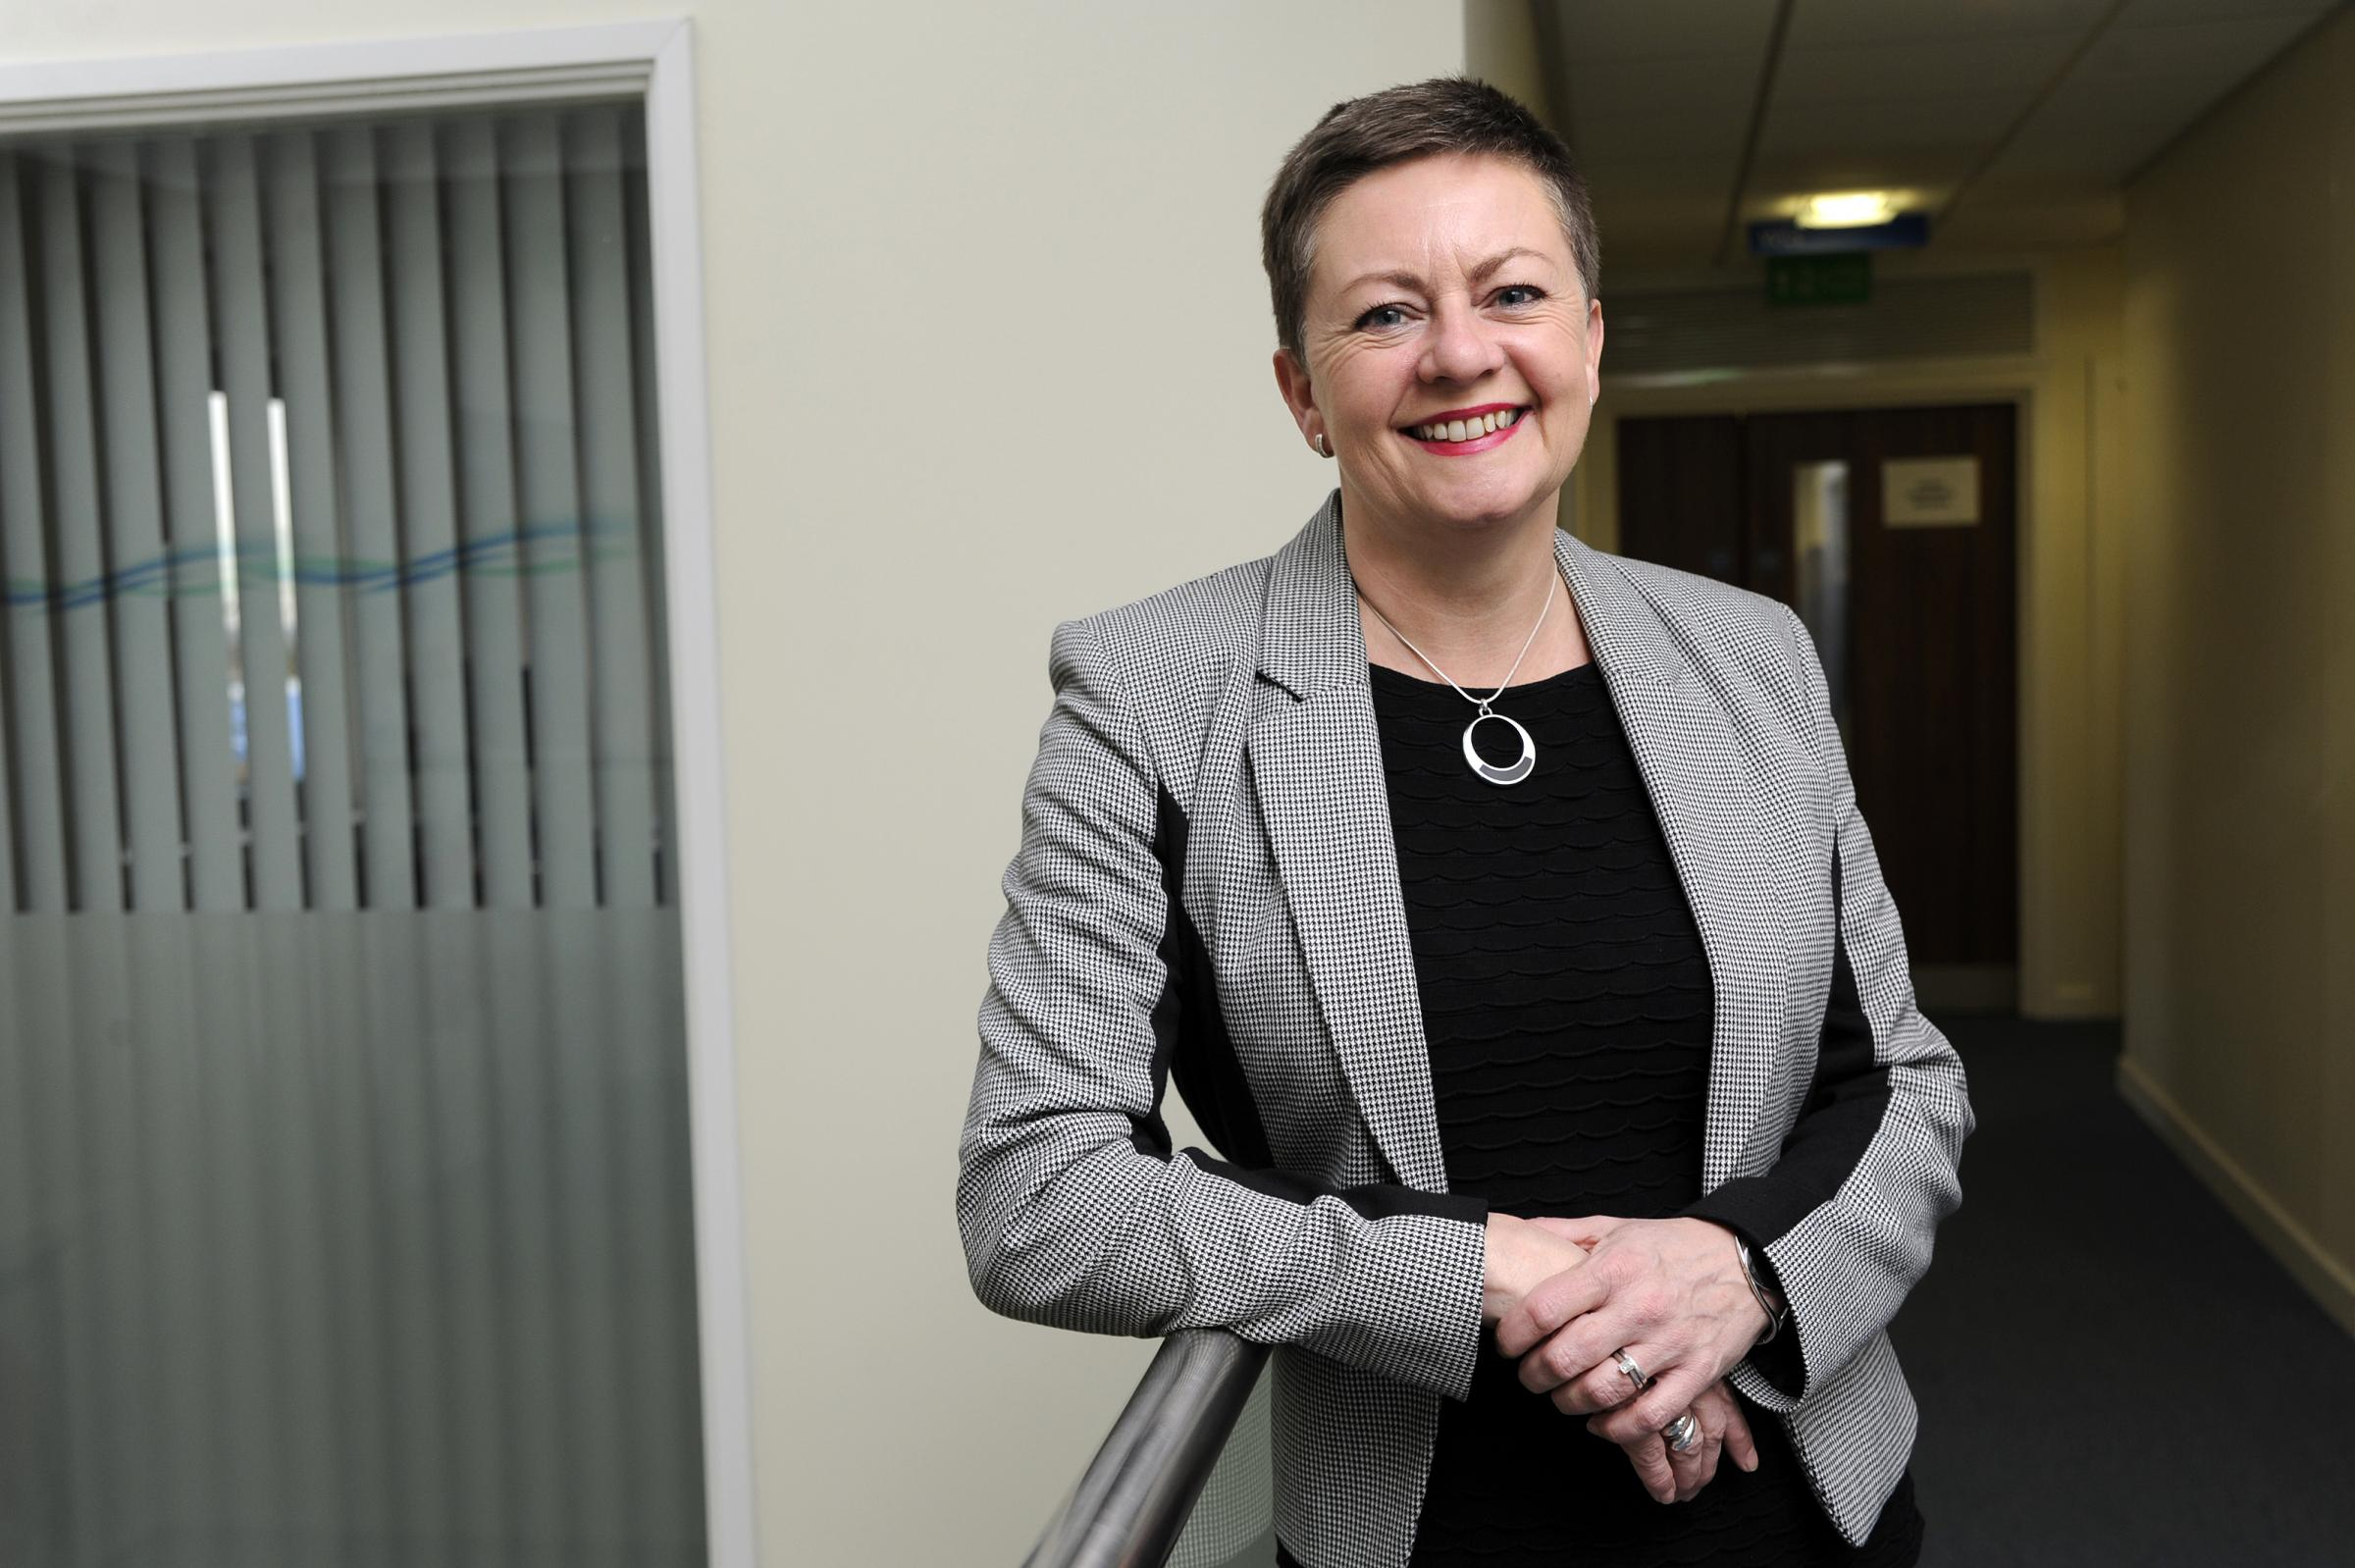 Jacqueline Totterdell - one of the top 50 NHS bosses in the country